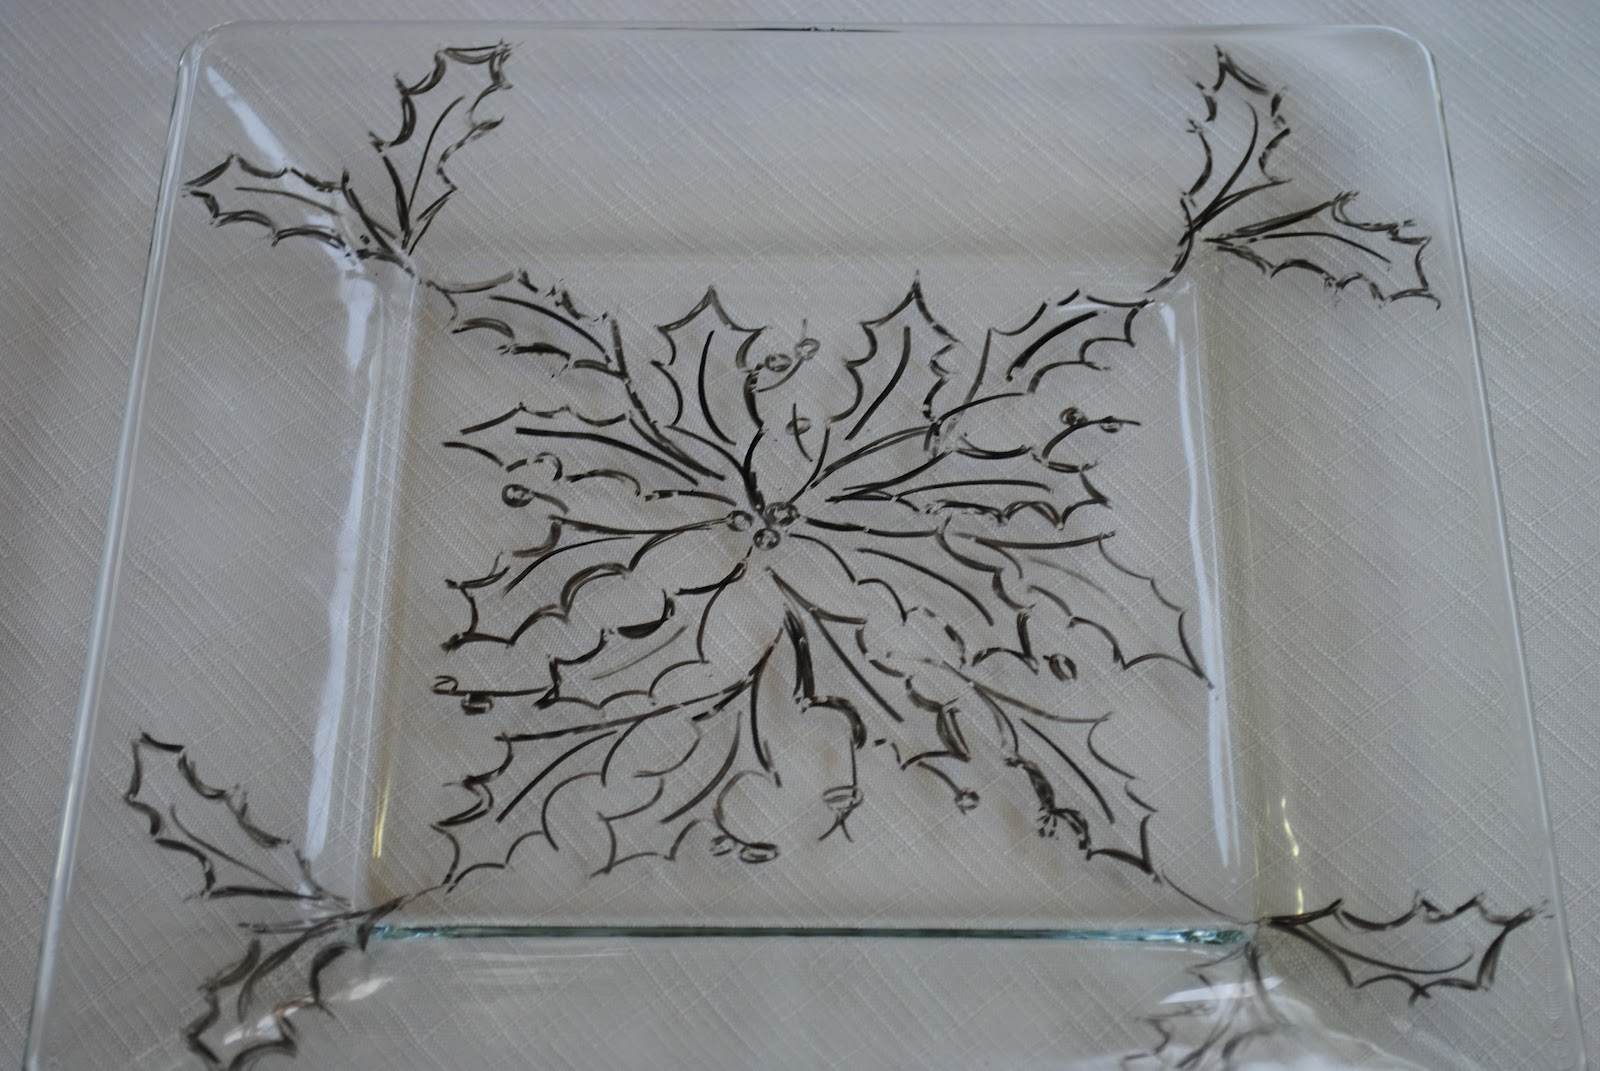 Christmas holiday ideas glass painting creative gift giving - Creative glass painting ideas ...